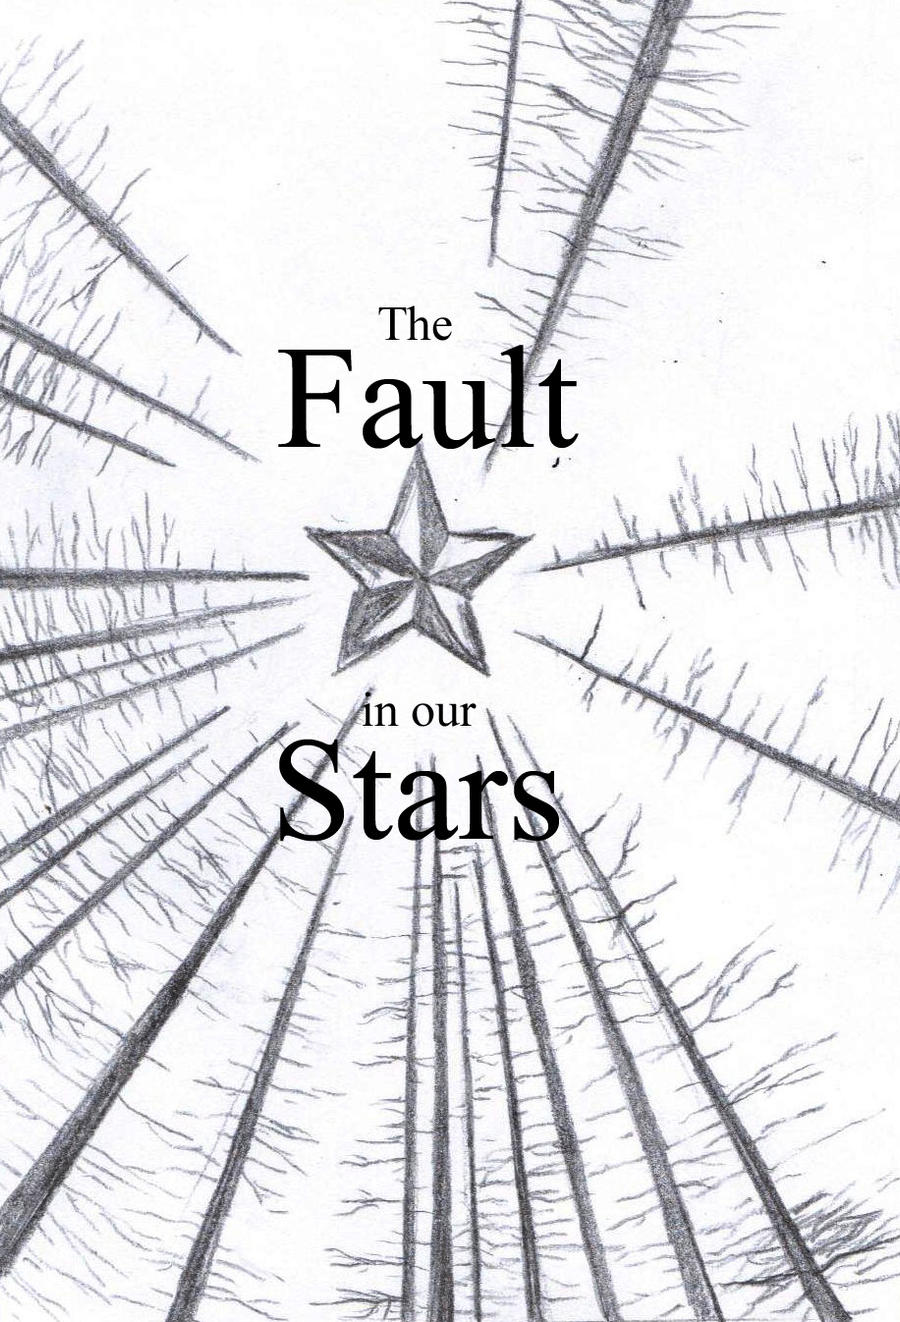 The Fault in Our Stars TN by EmilyIris on DeviantArt